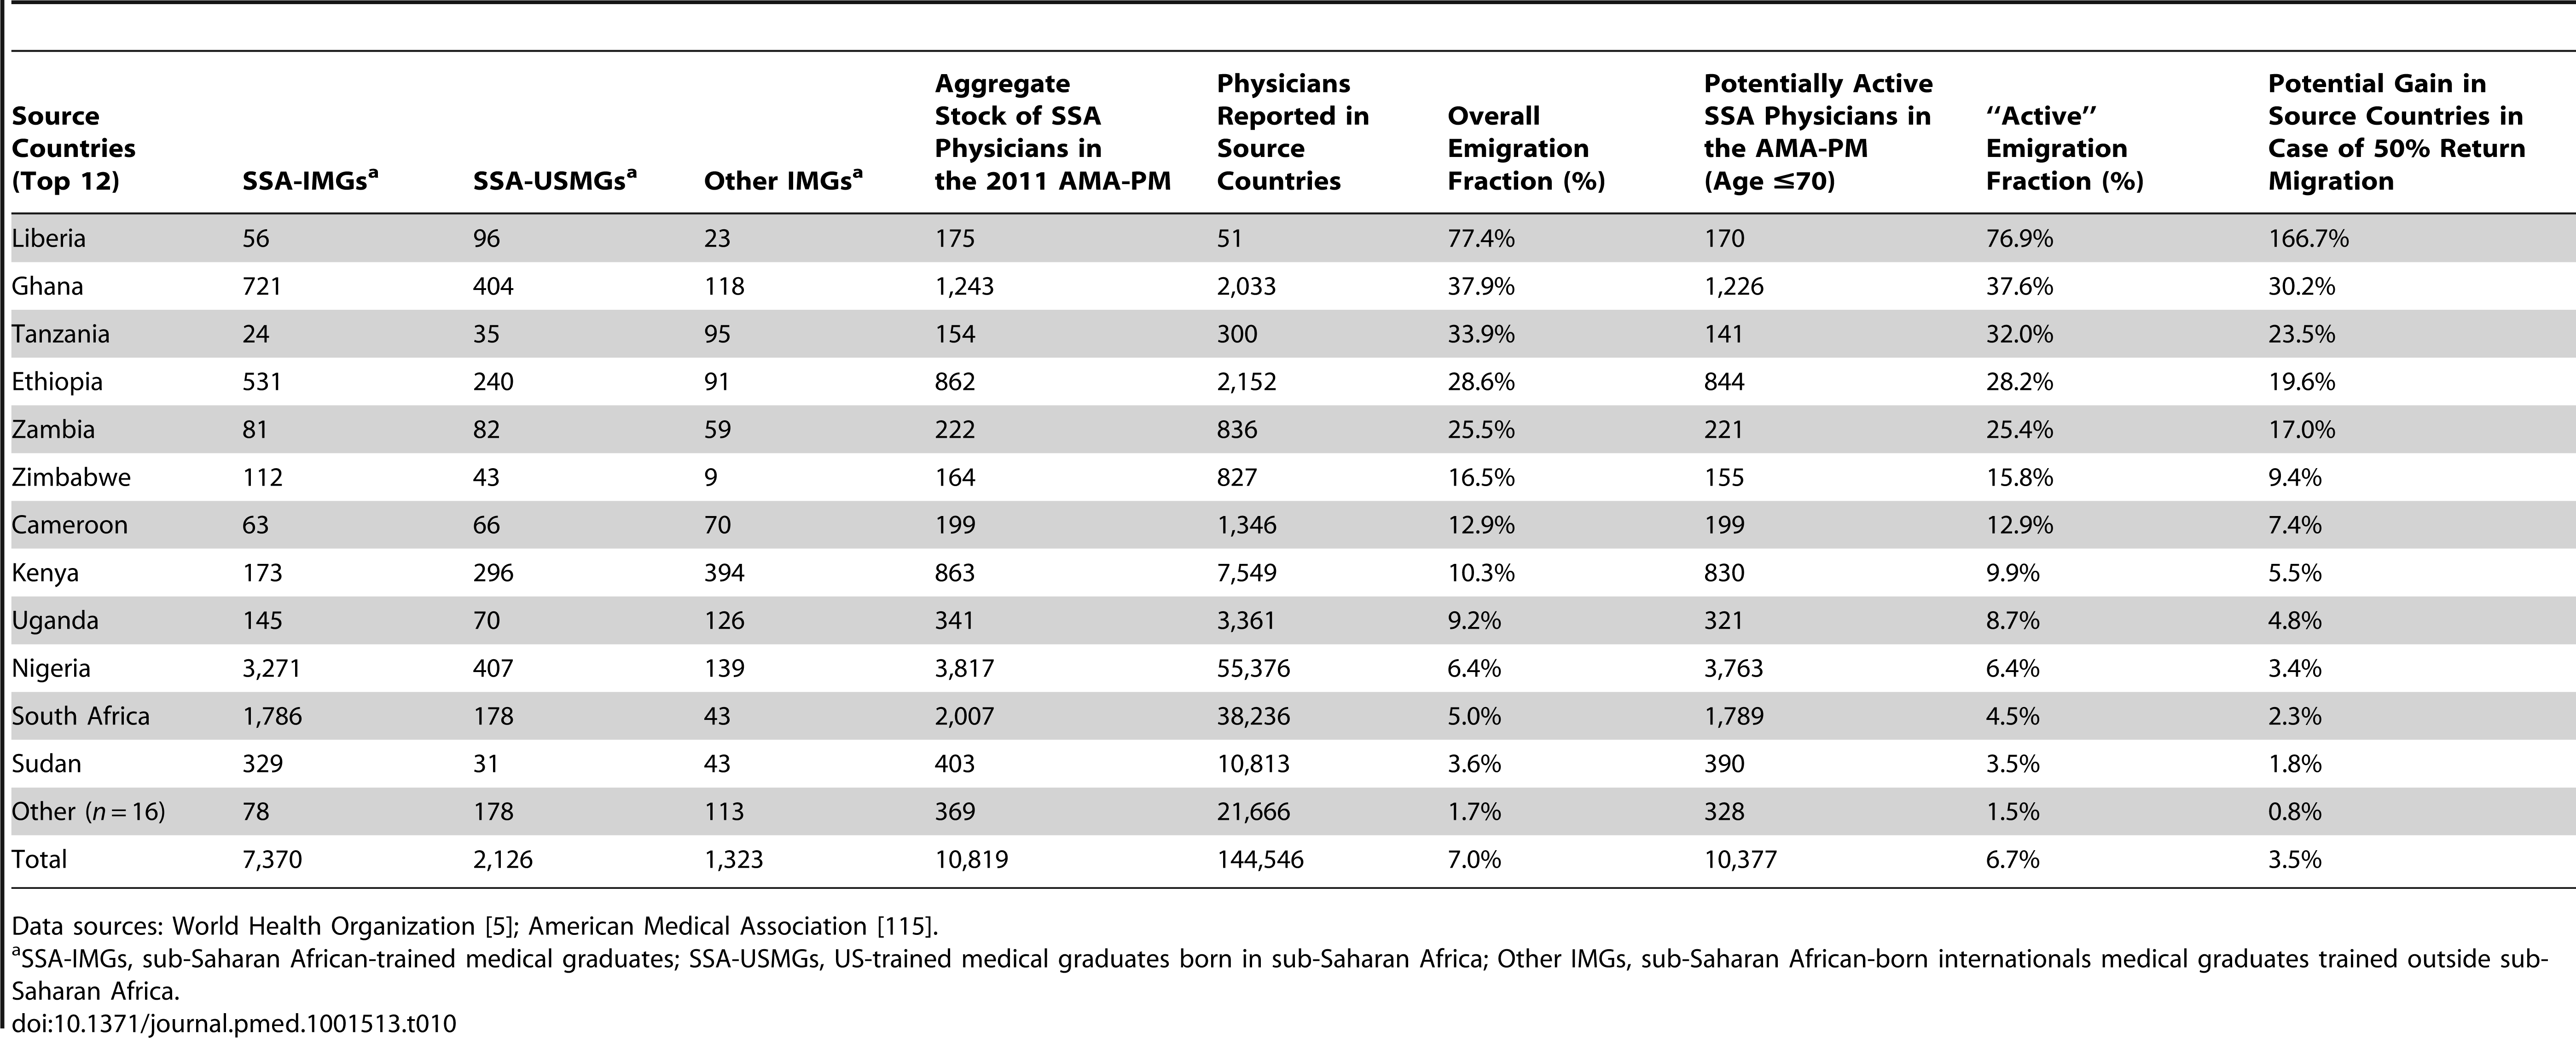 Aggregate stock and overall emigration fraction of Sub-Saharan African physicians in the US physician workforce in 2011.